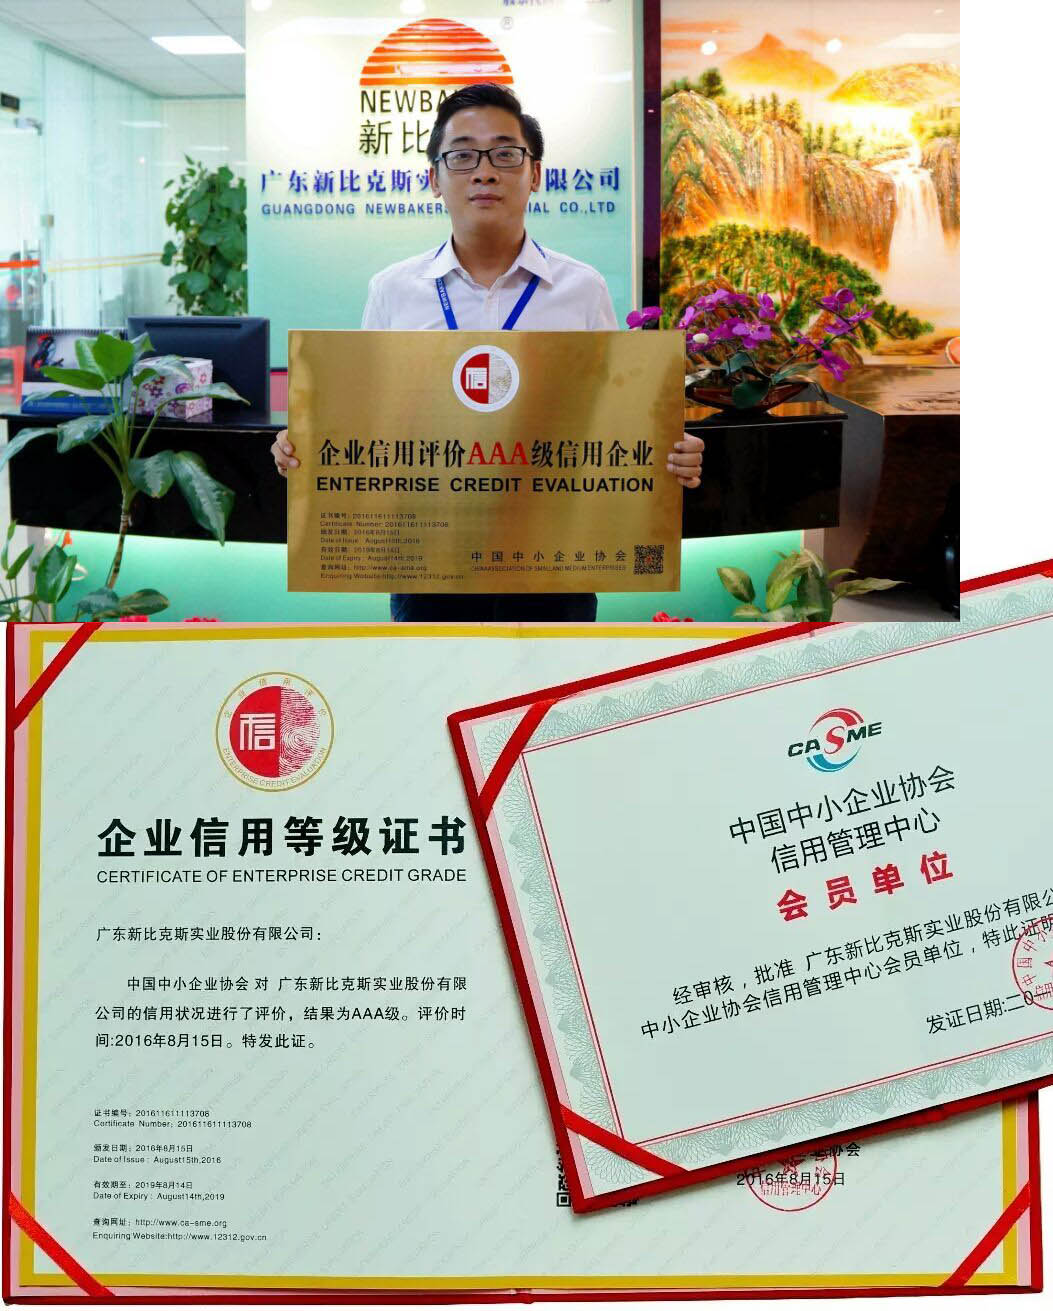 Newbakers get highest AAA credit grade issued by the Minister of Commercial of PRC